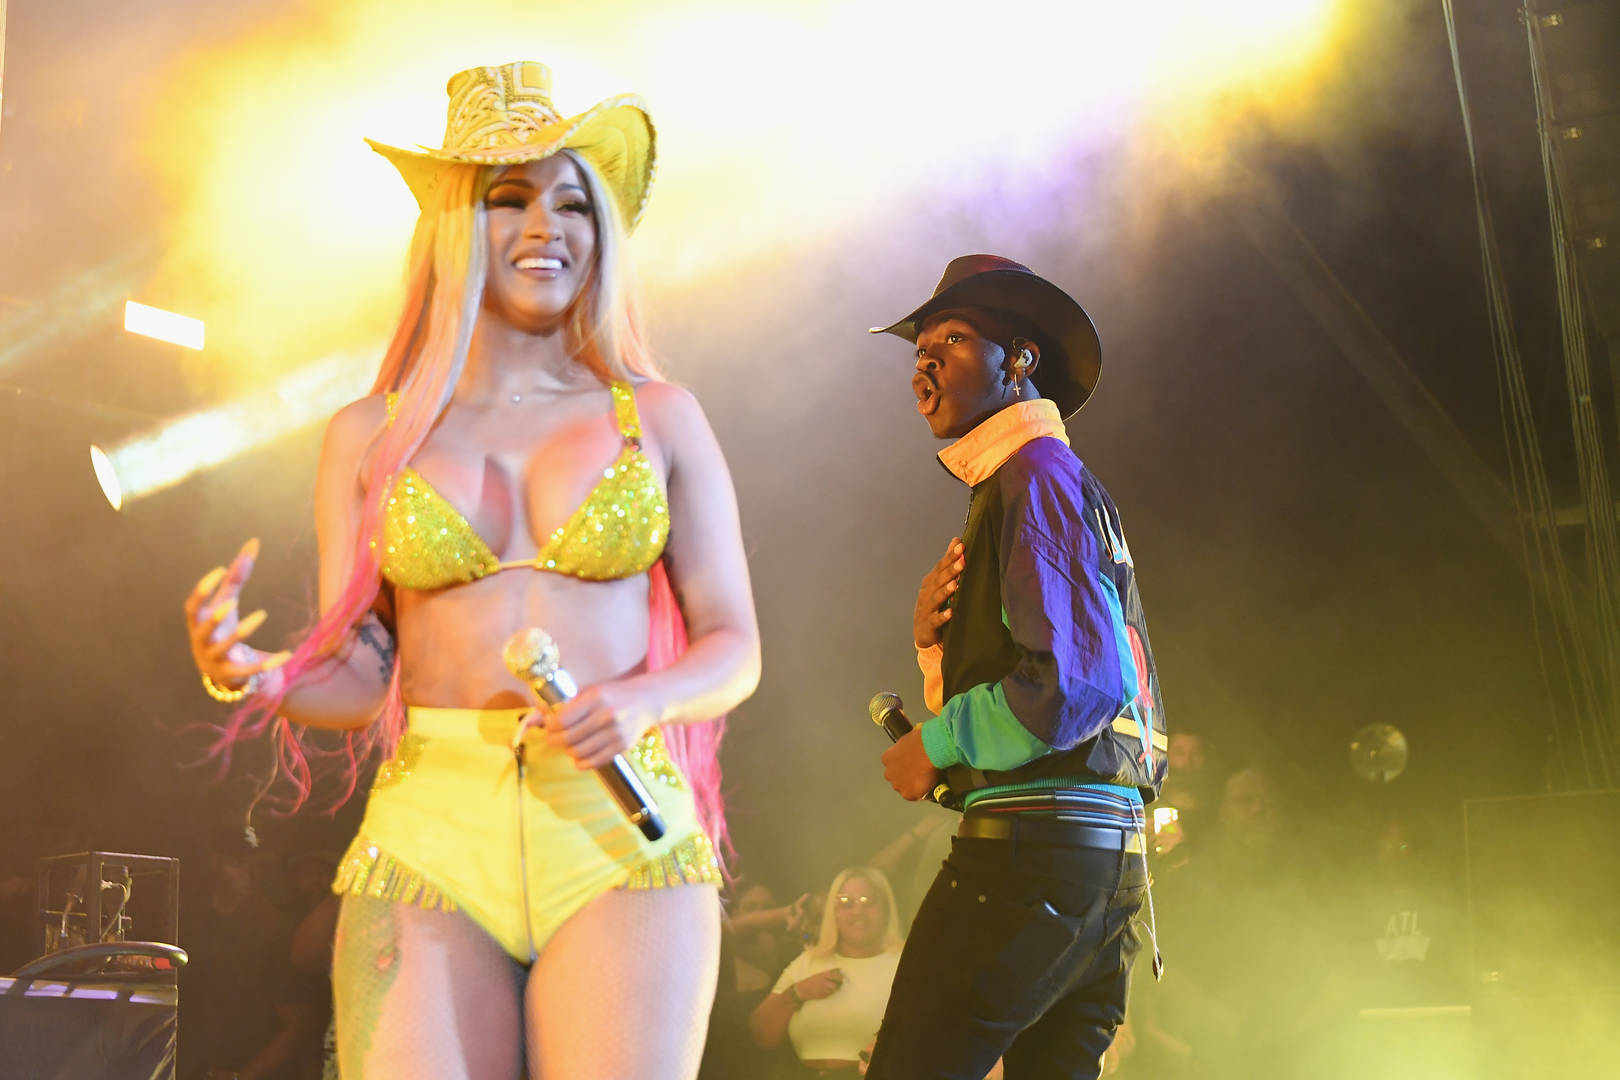 Cardi B and Lil Nas X perform at Summer Jam 2019 at MetLife Stadium on June 02, 2019 in East Rutherford, New Jersey.